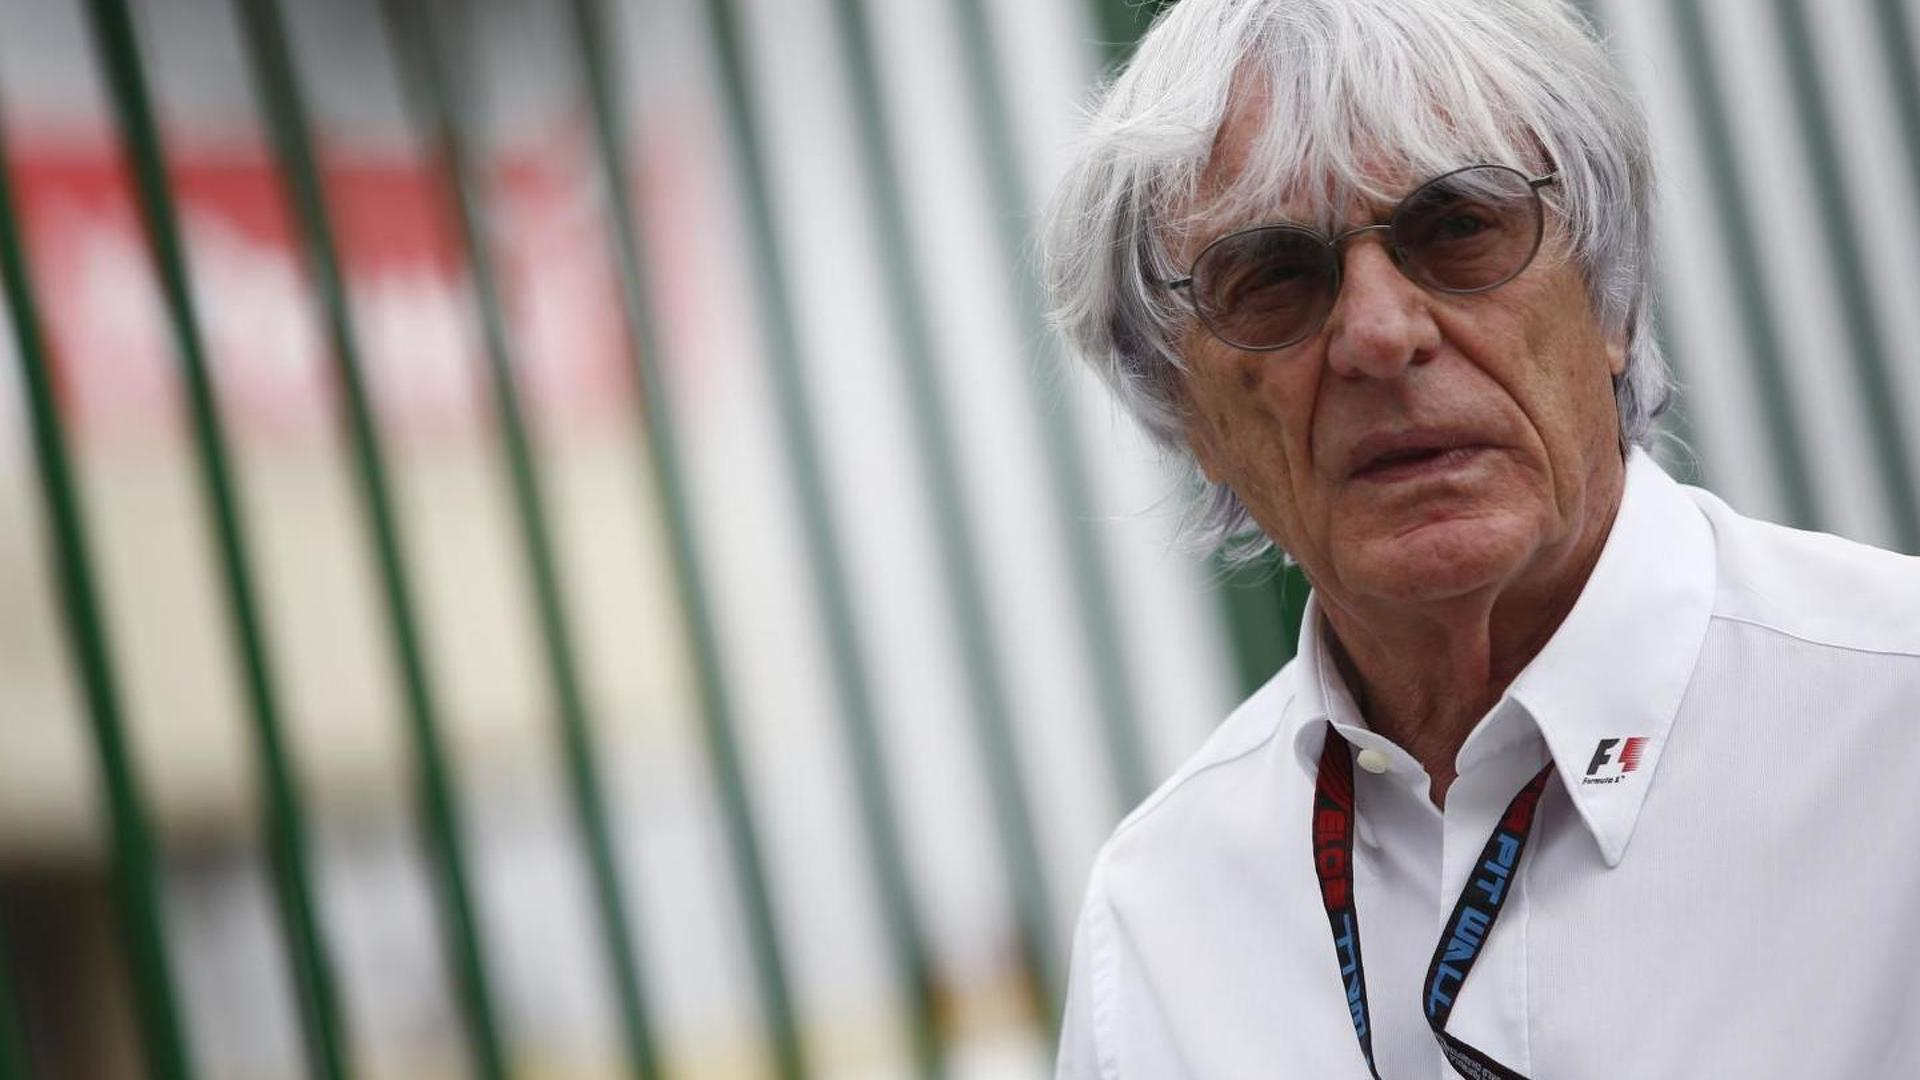 Plea bargain could keep Ecclestone in charge